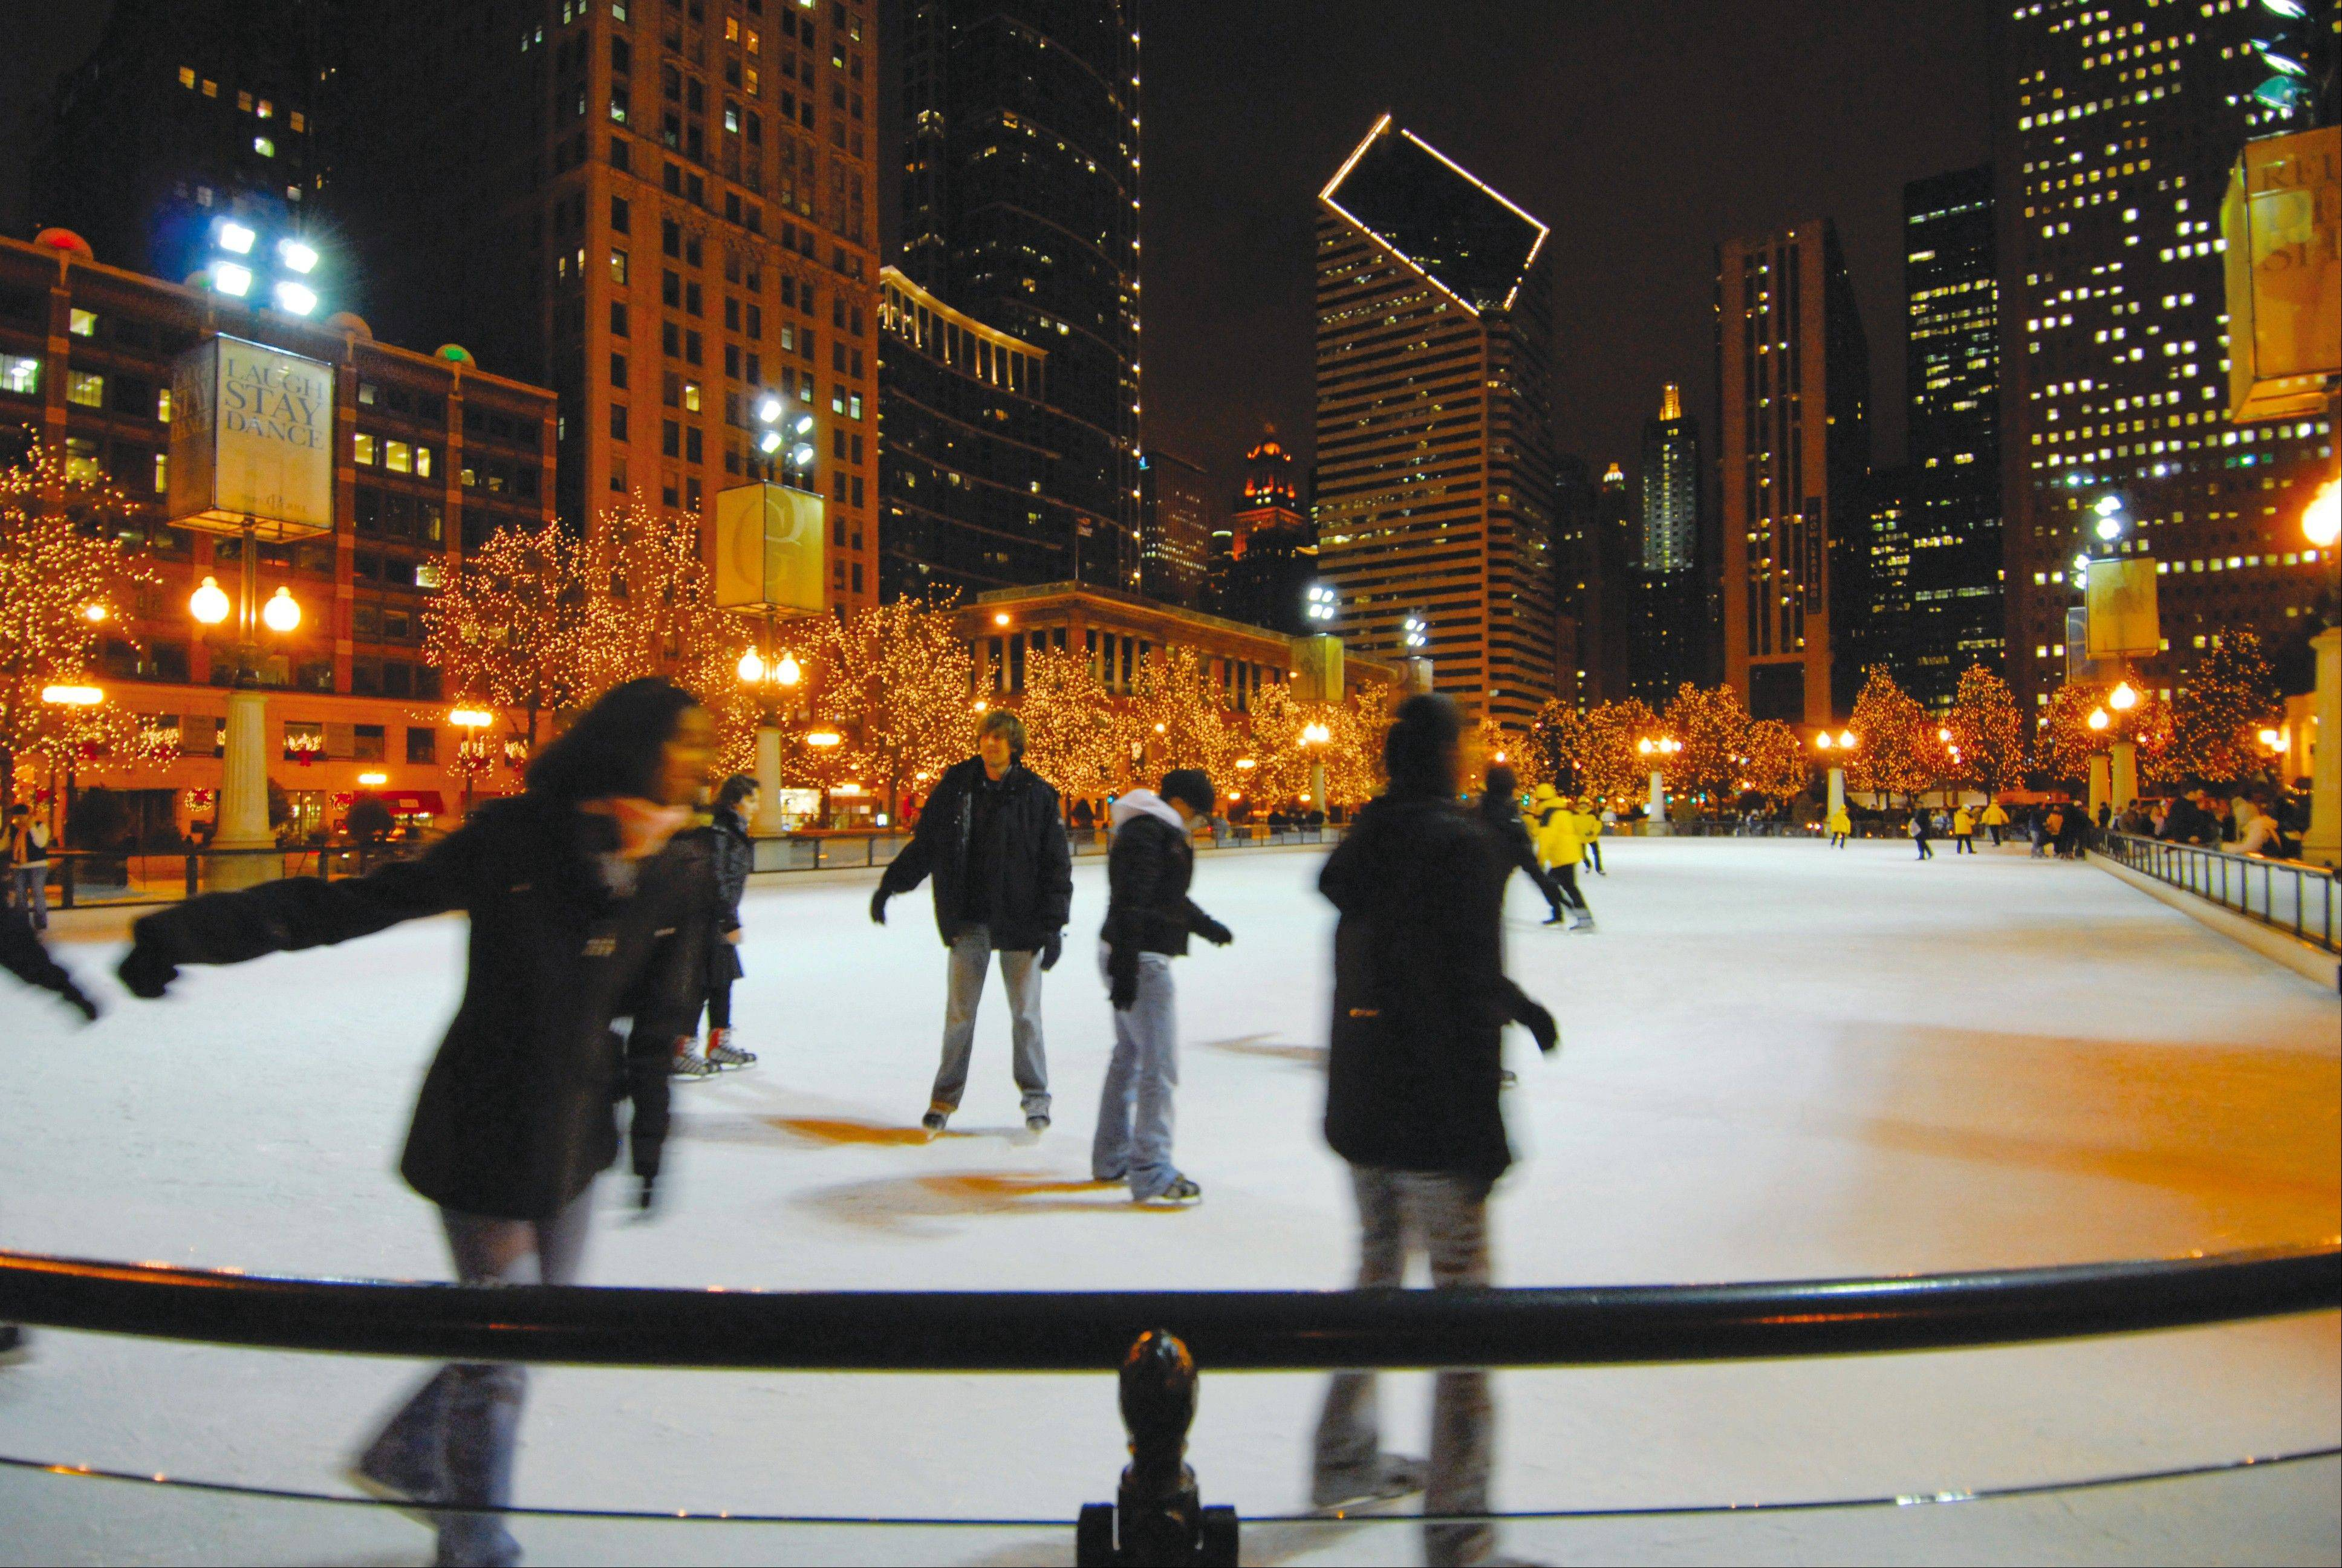 The McCormick Tribune Ice Rink at Chicago's Millennium Park offers skaters more than 15,000 feet of ice.